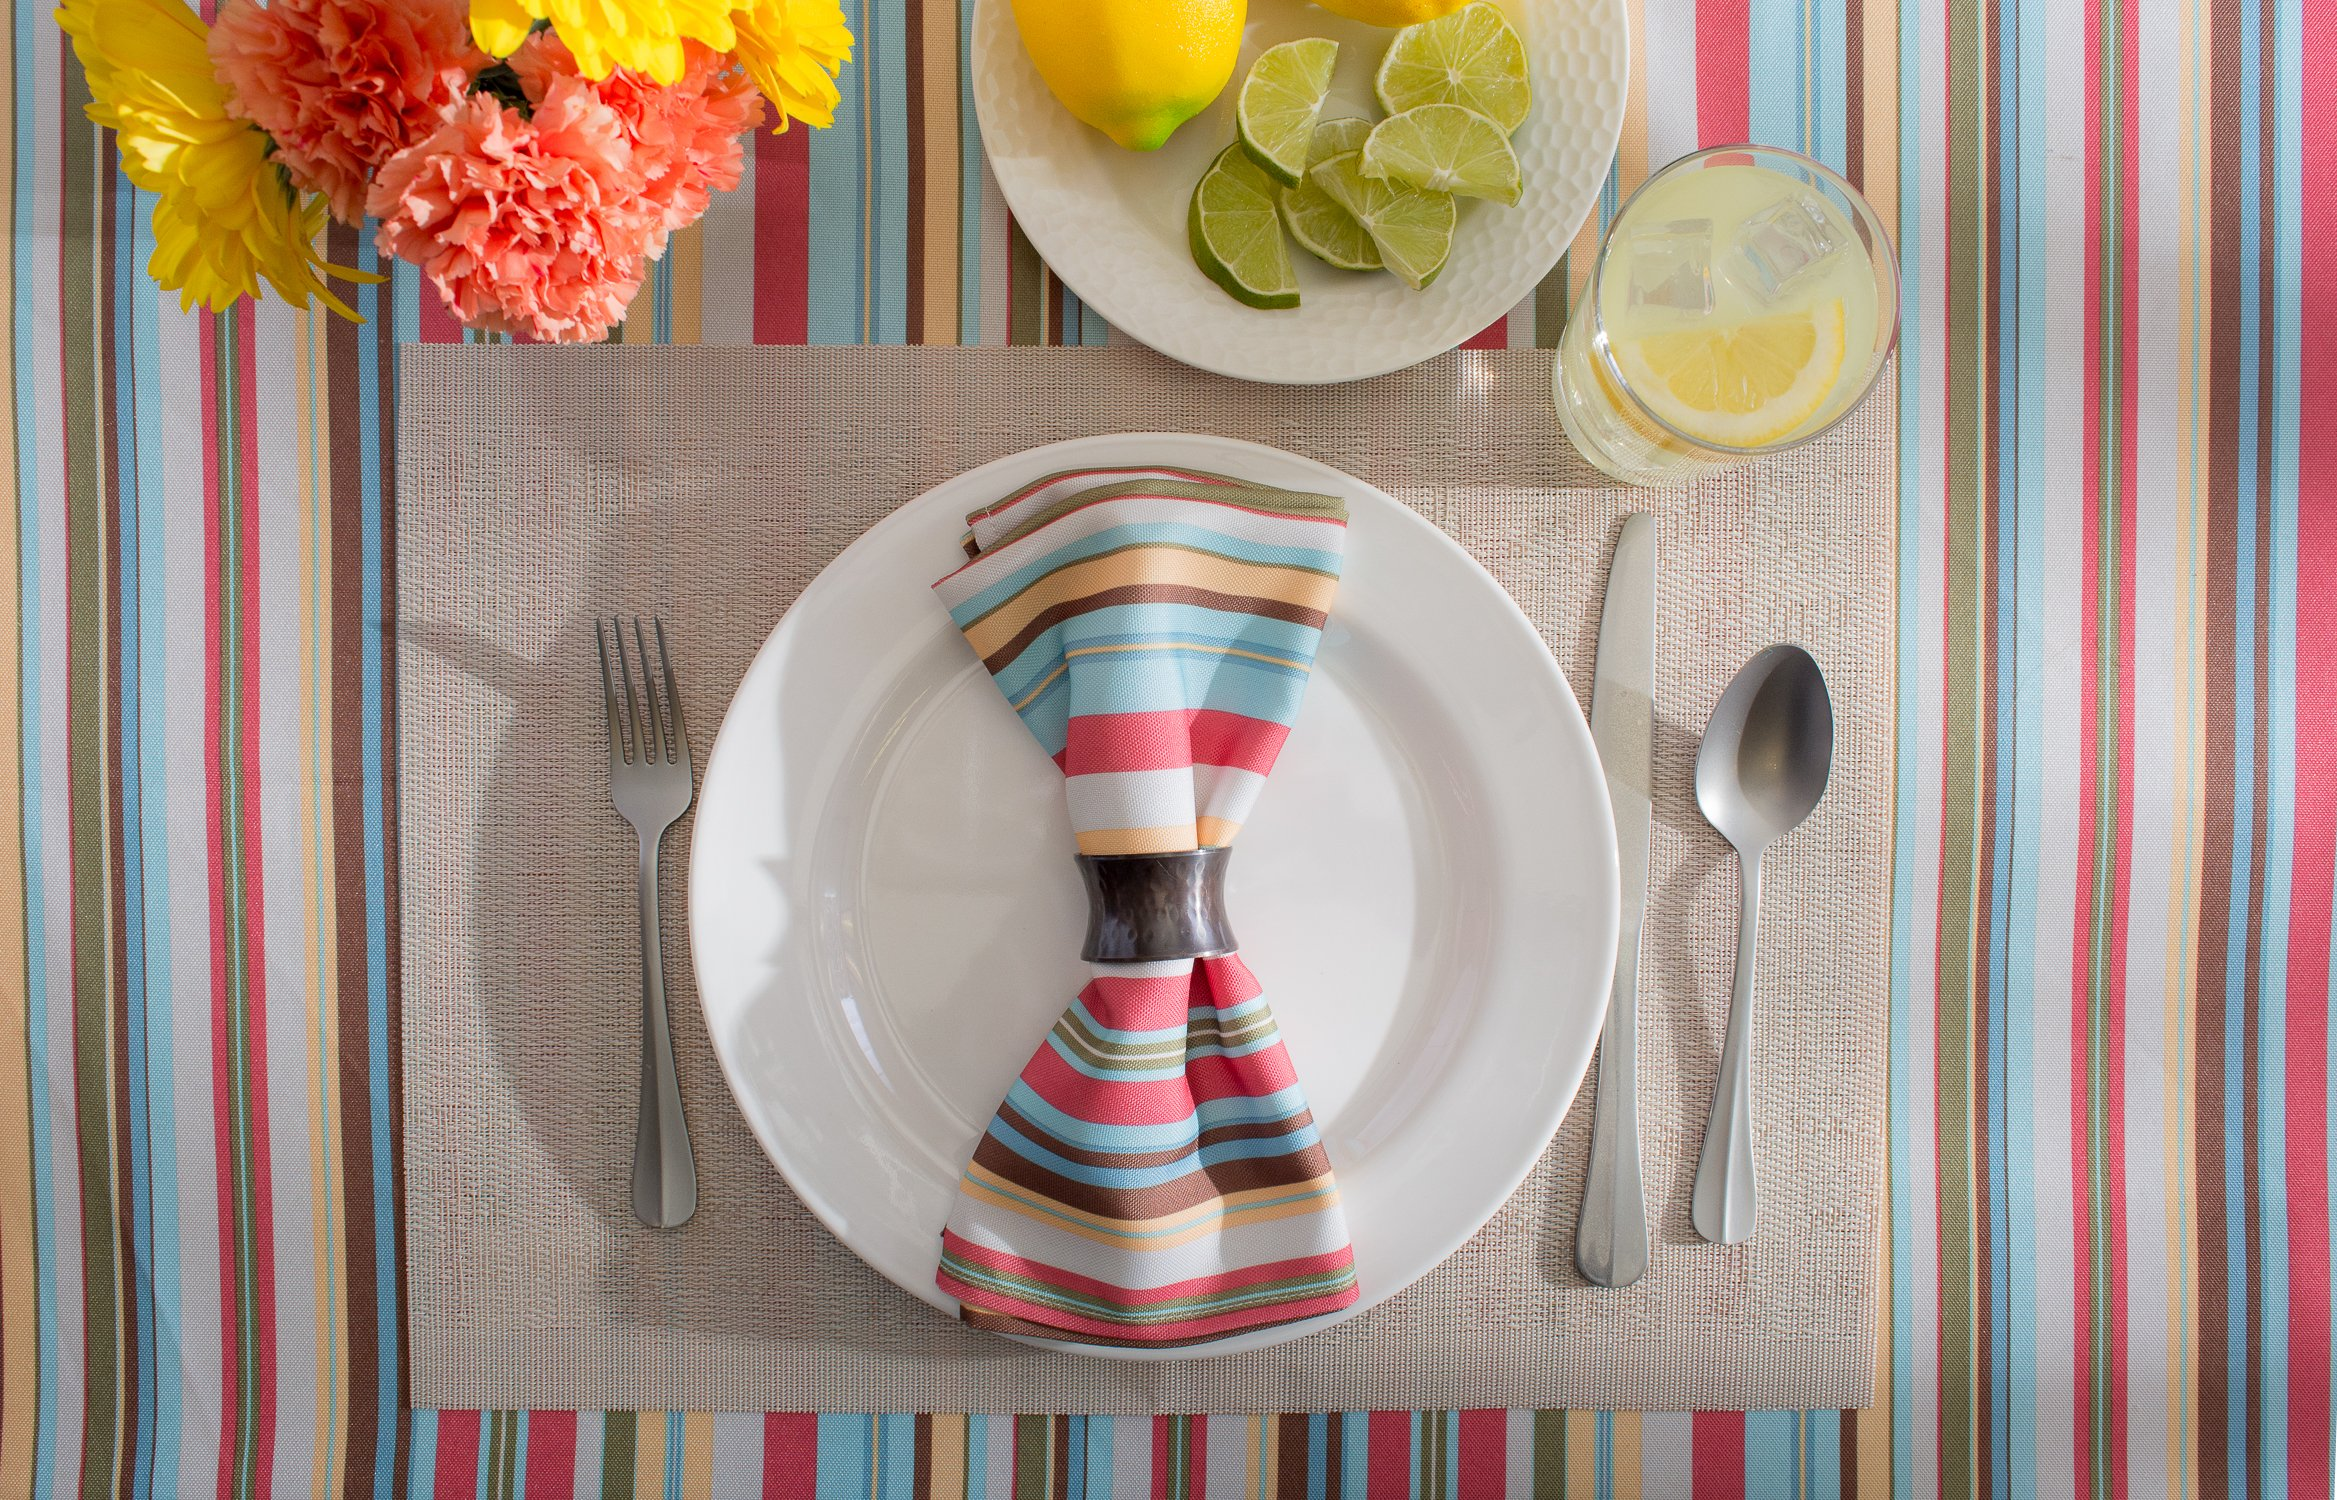 DII Spring & Summer Outdoor Tablecloth, Spill Proof and Waterproof with Zipper and Umbrella Hole, Host Backyard Parties, BBQs, & Family Gatherings - (60x84'' - Seats 6 to 8) Warm Summer Stripe by DII (Image #9)